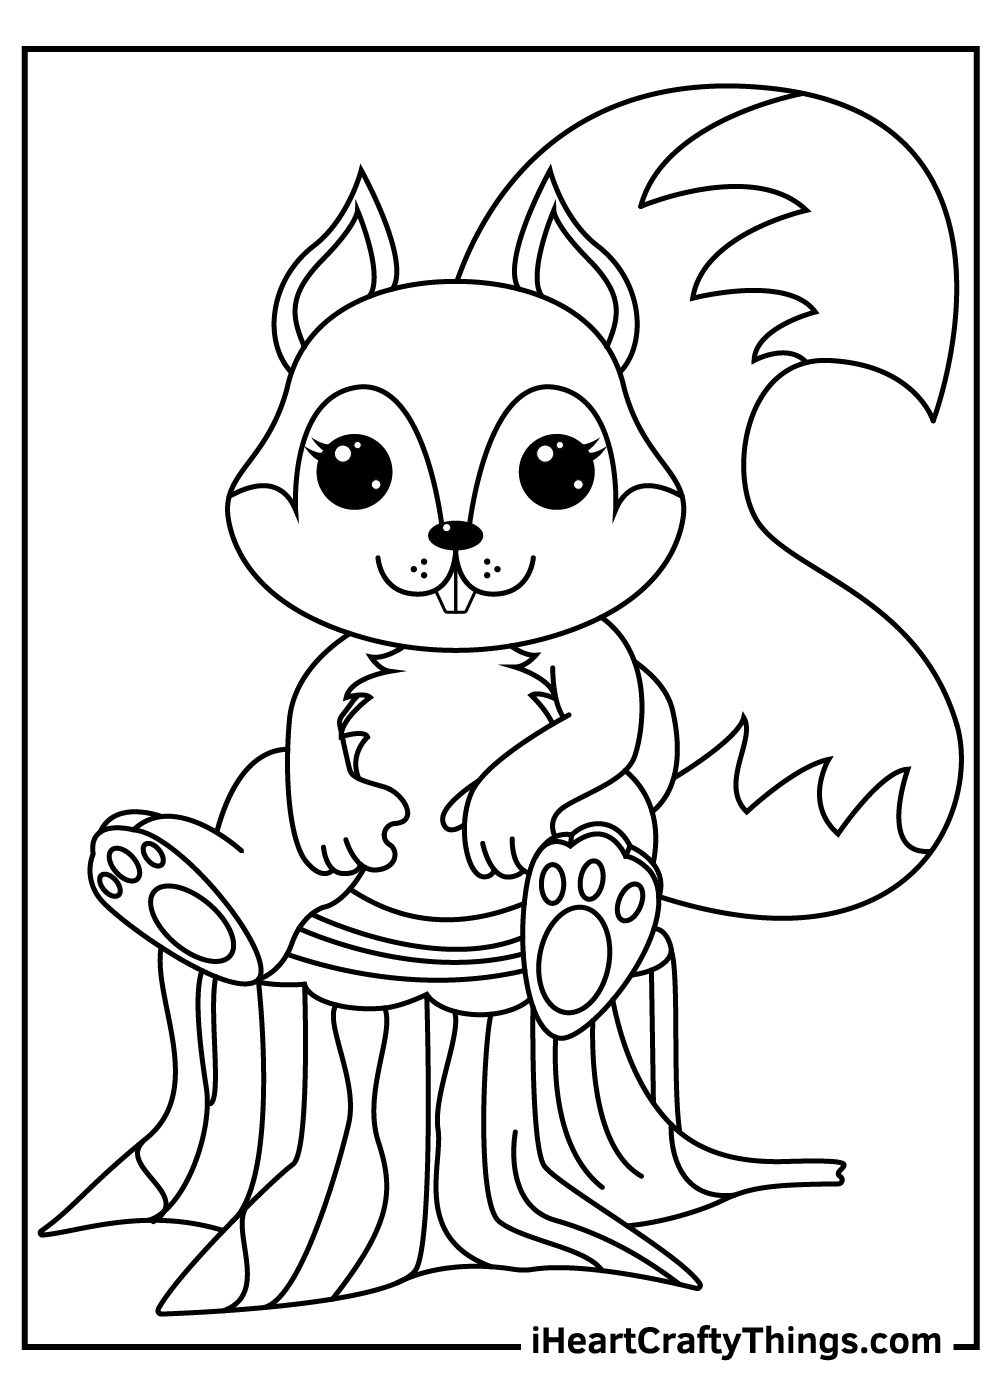 chip and dale squirrels coloring pages free download